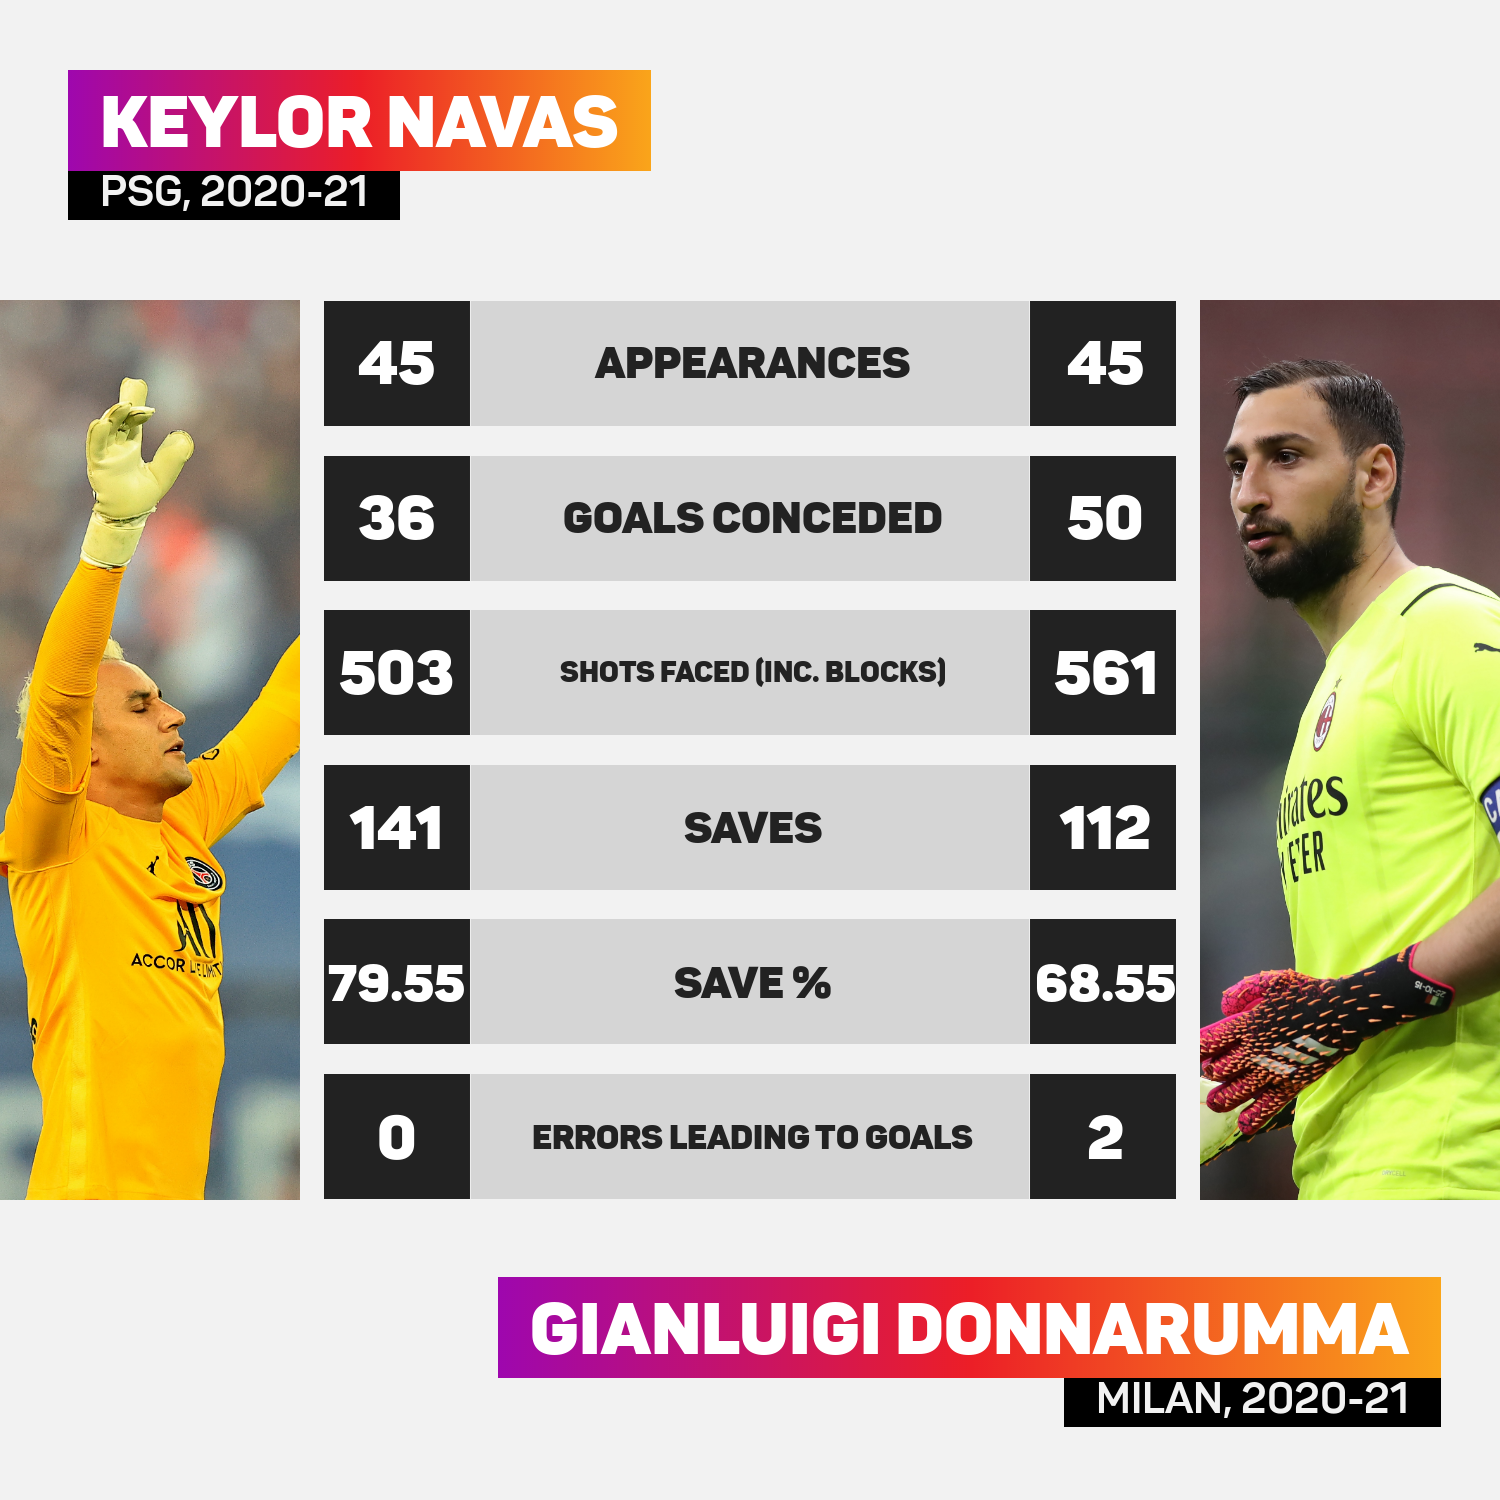 Keylor Navas and Gianluigi Donnaruma will be competing for the number one spot